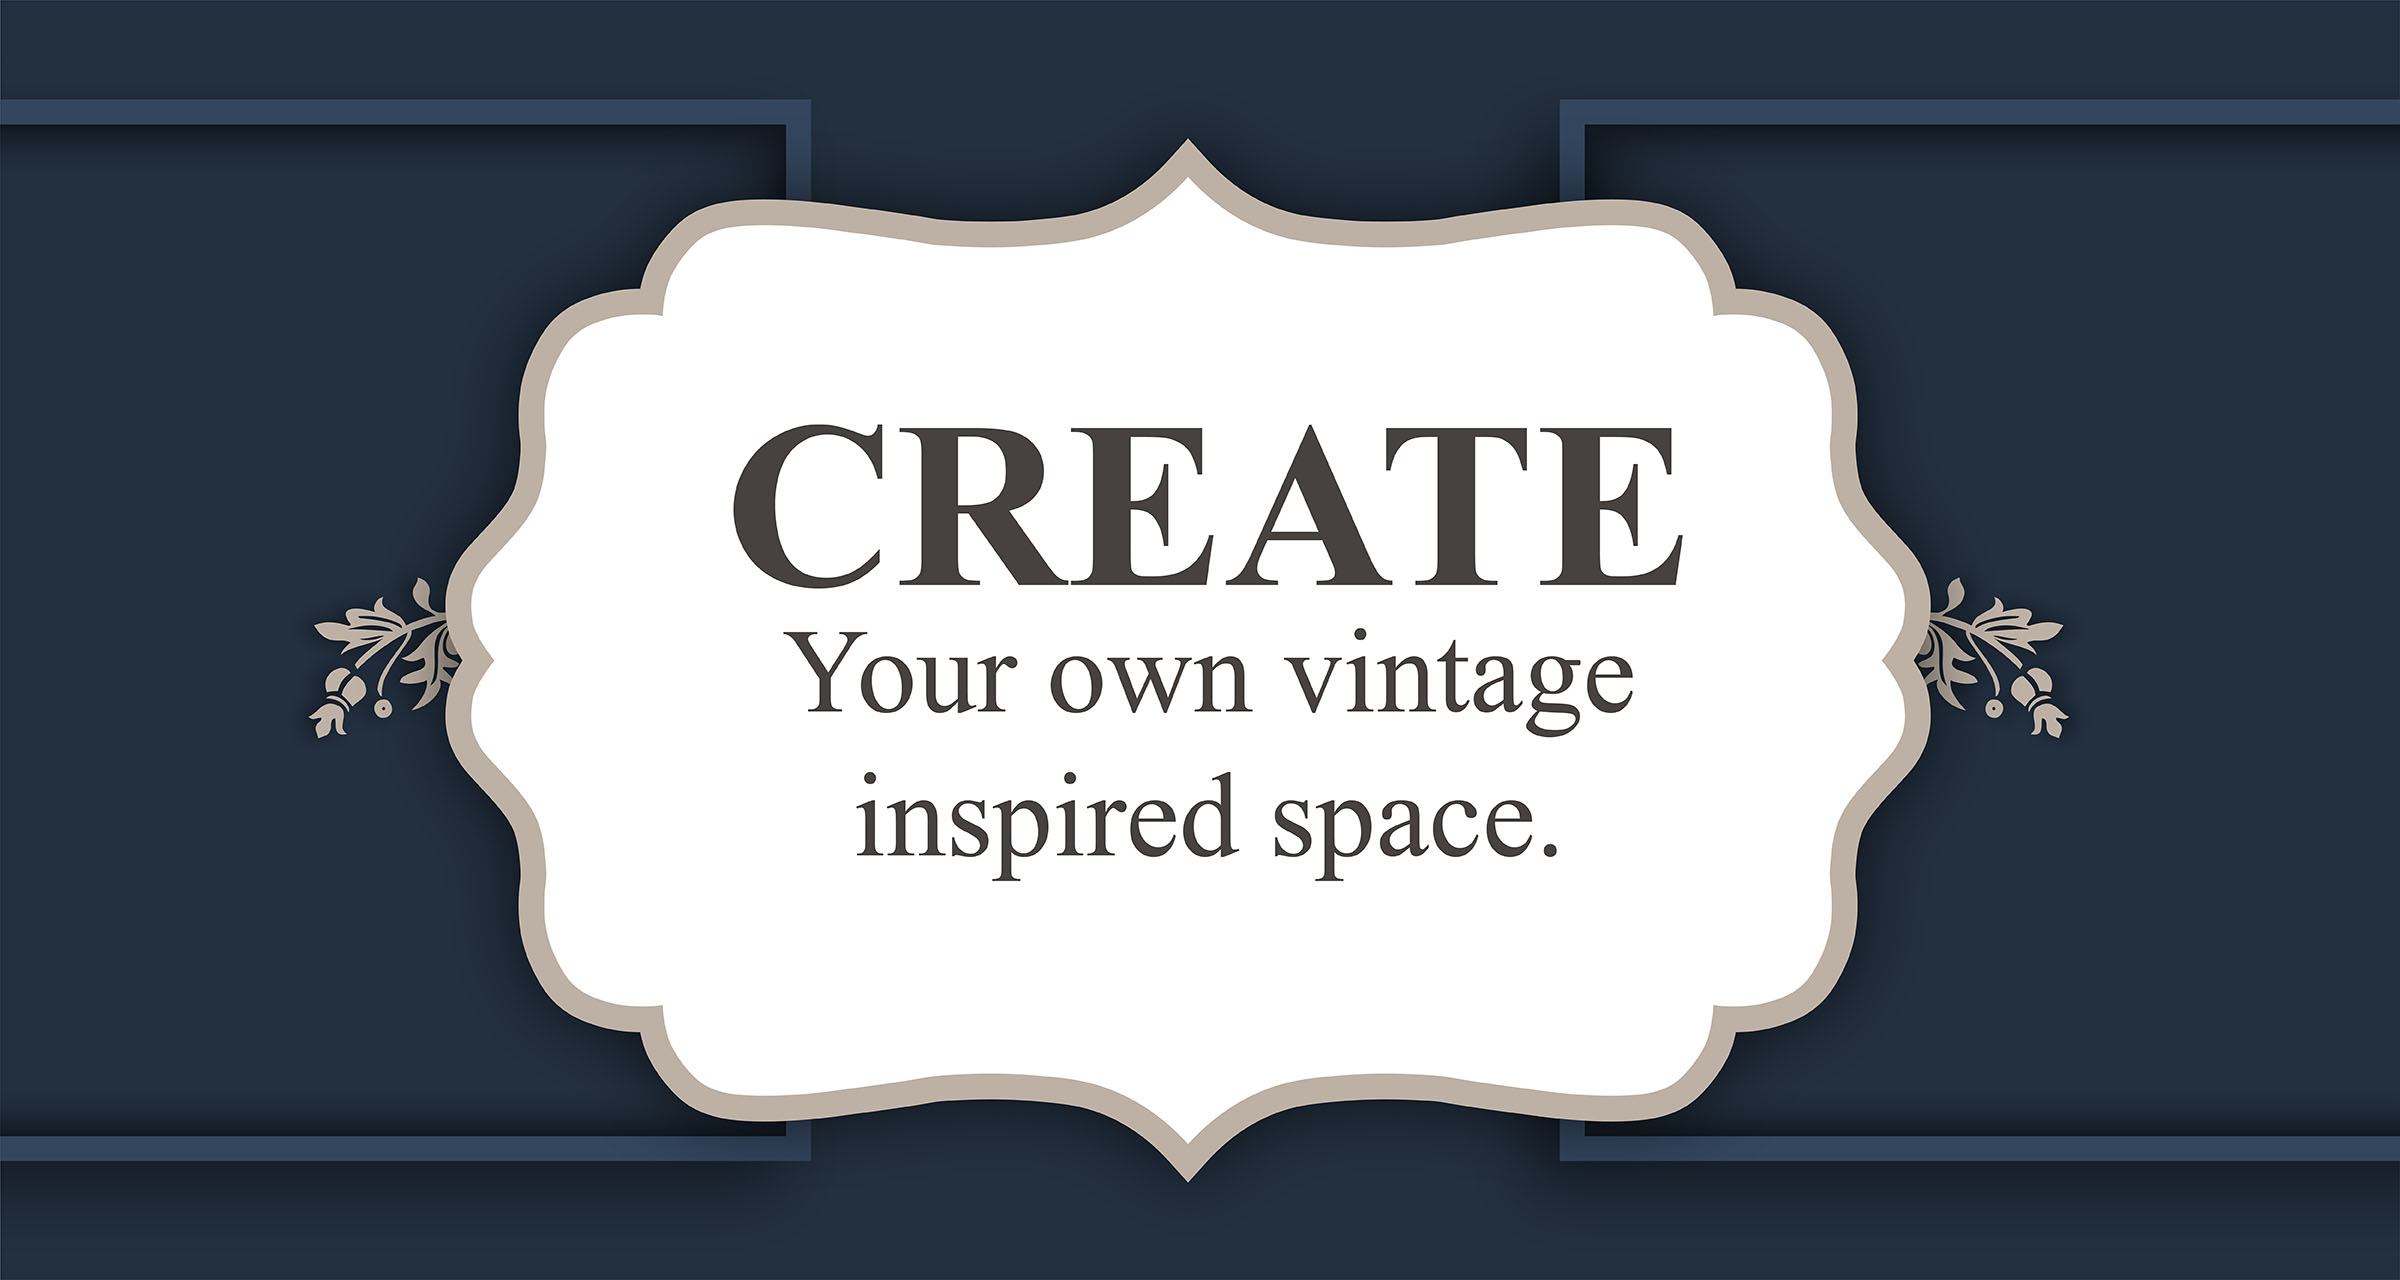 Create your own vintage inspired space